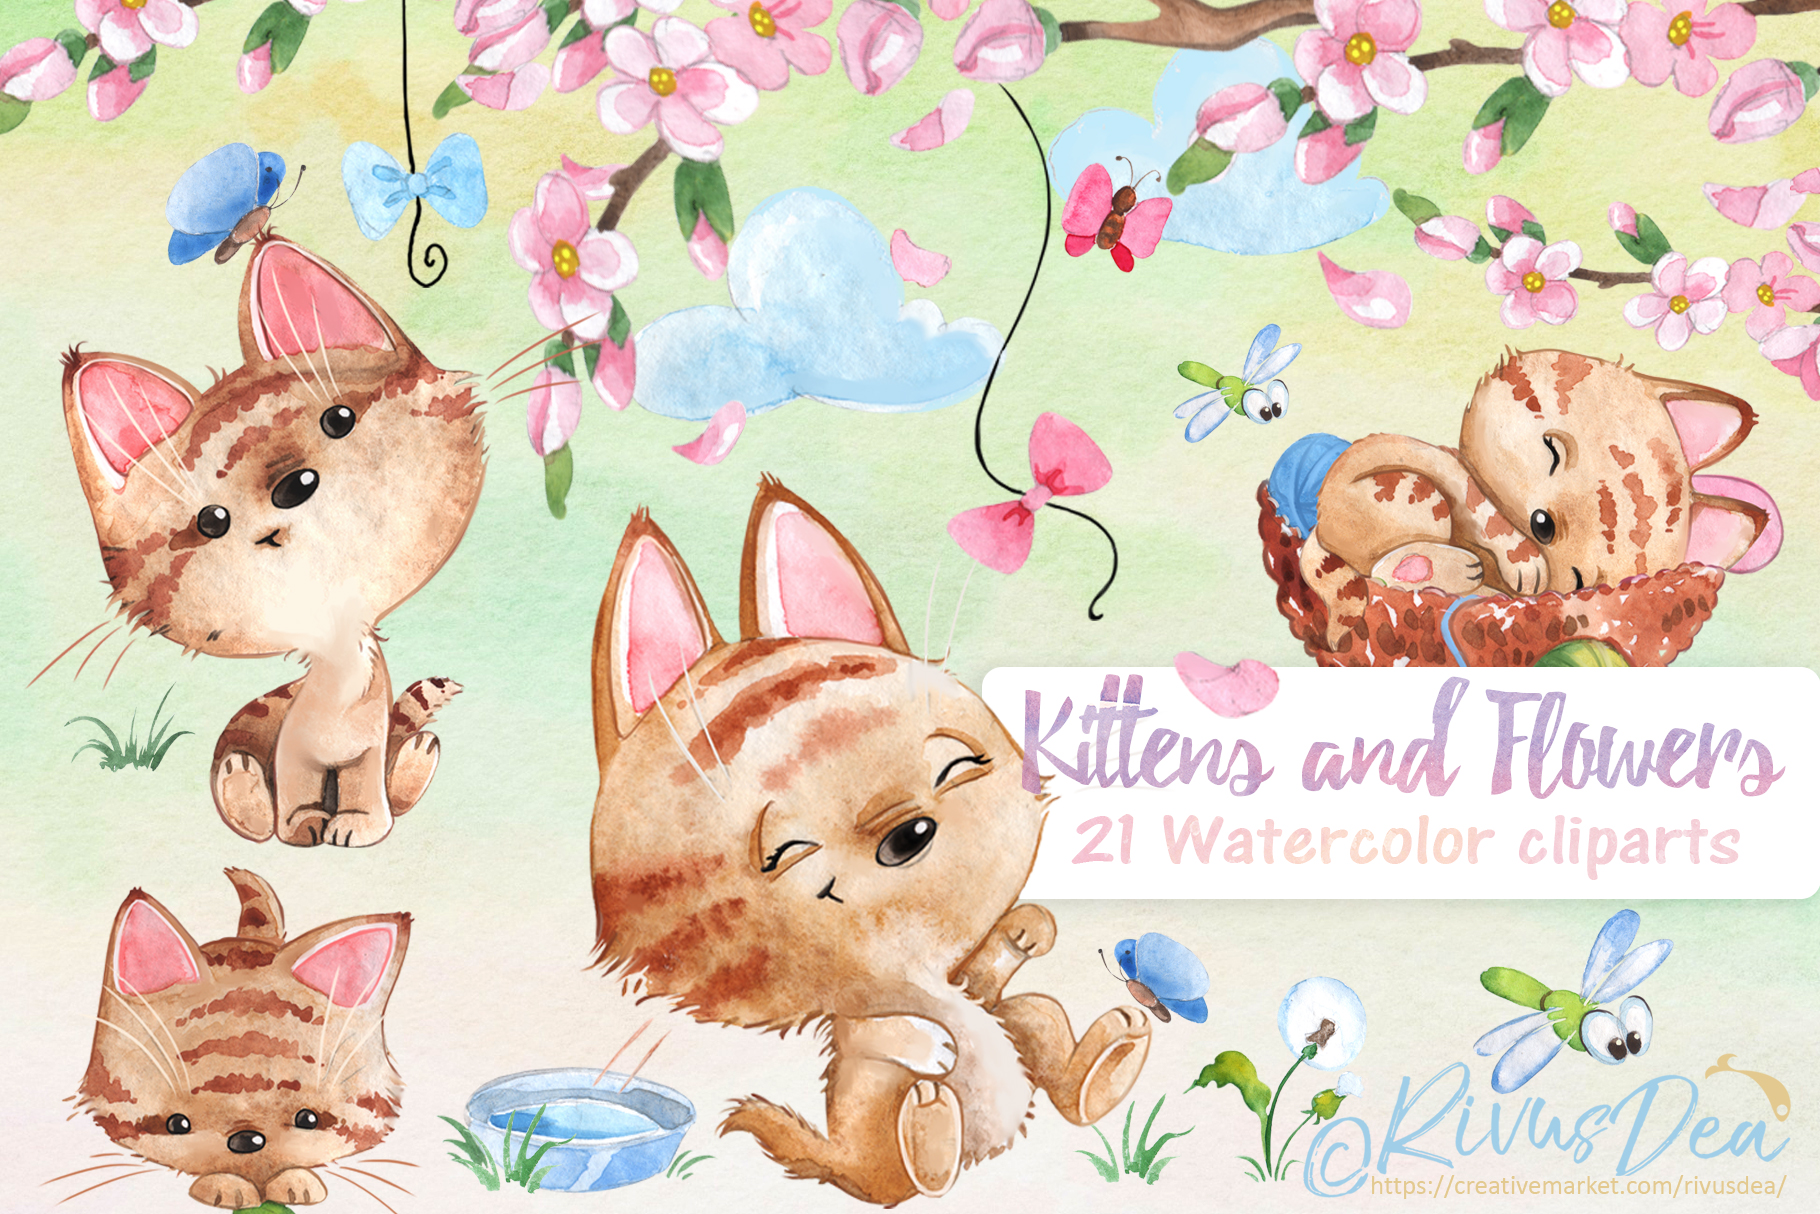 Watercolor animals clipart set.